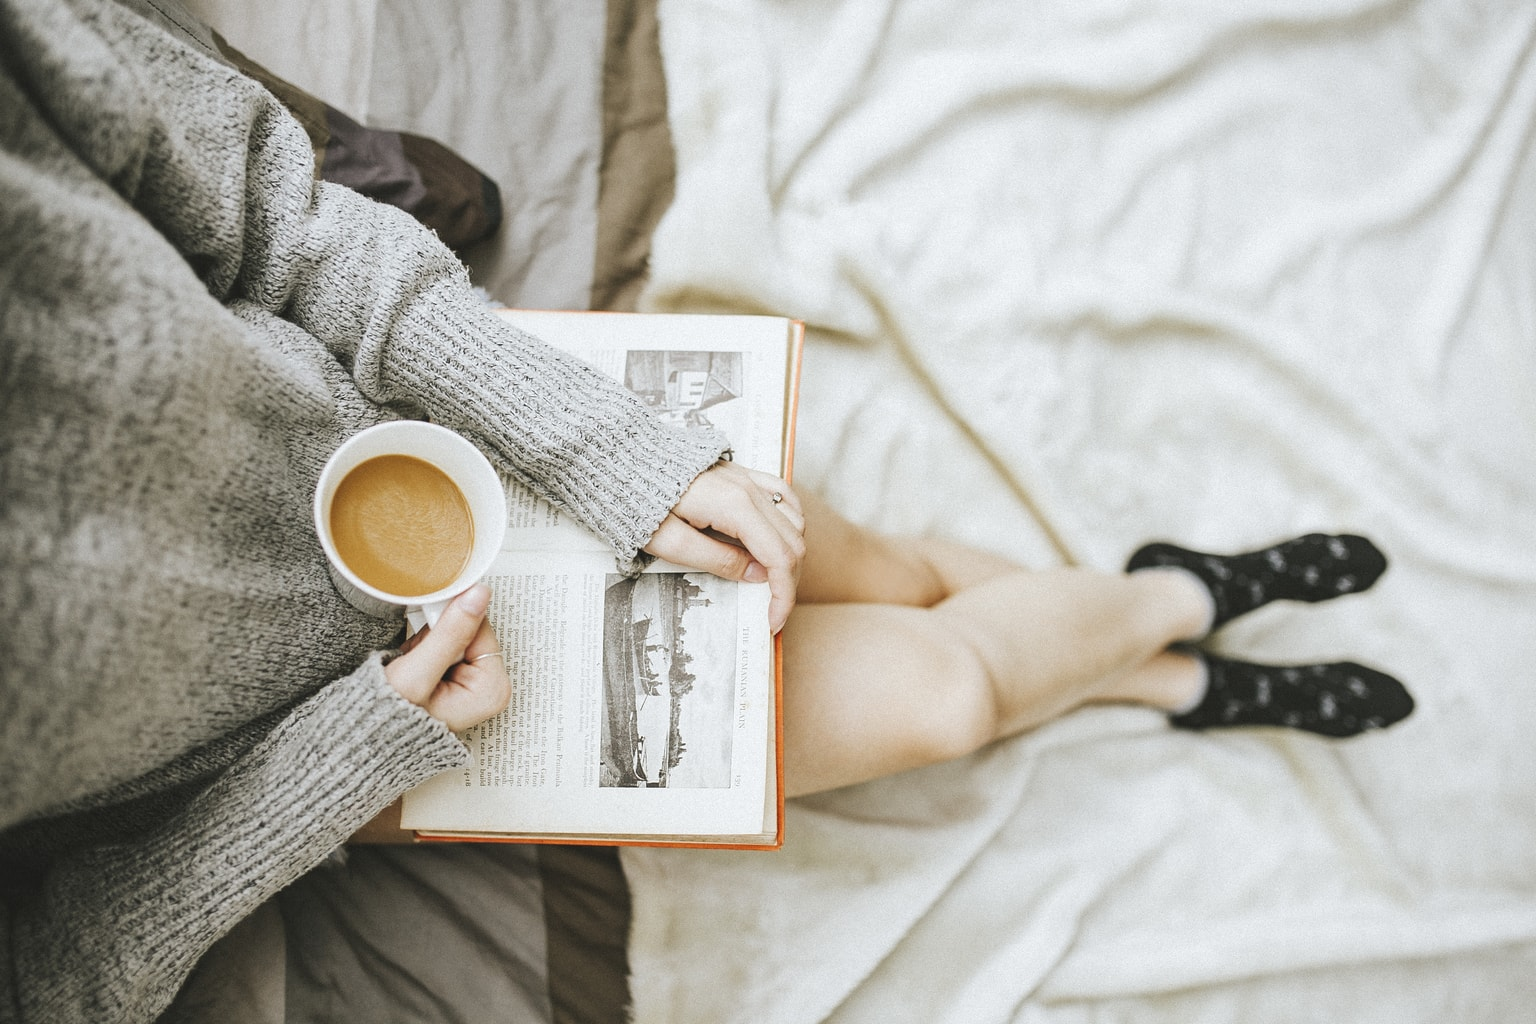 Photo of girl wearing a gray sweater and black patterned socks reading a book and drinking coffee.